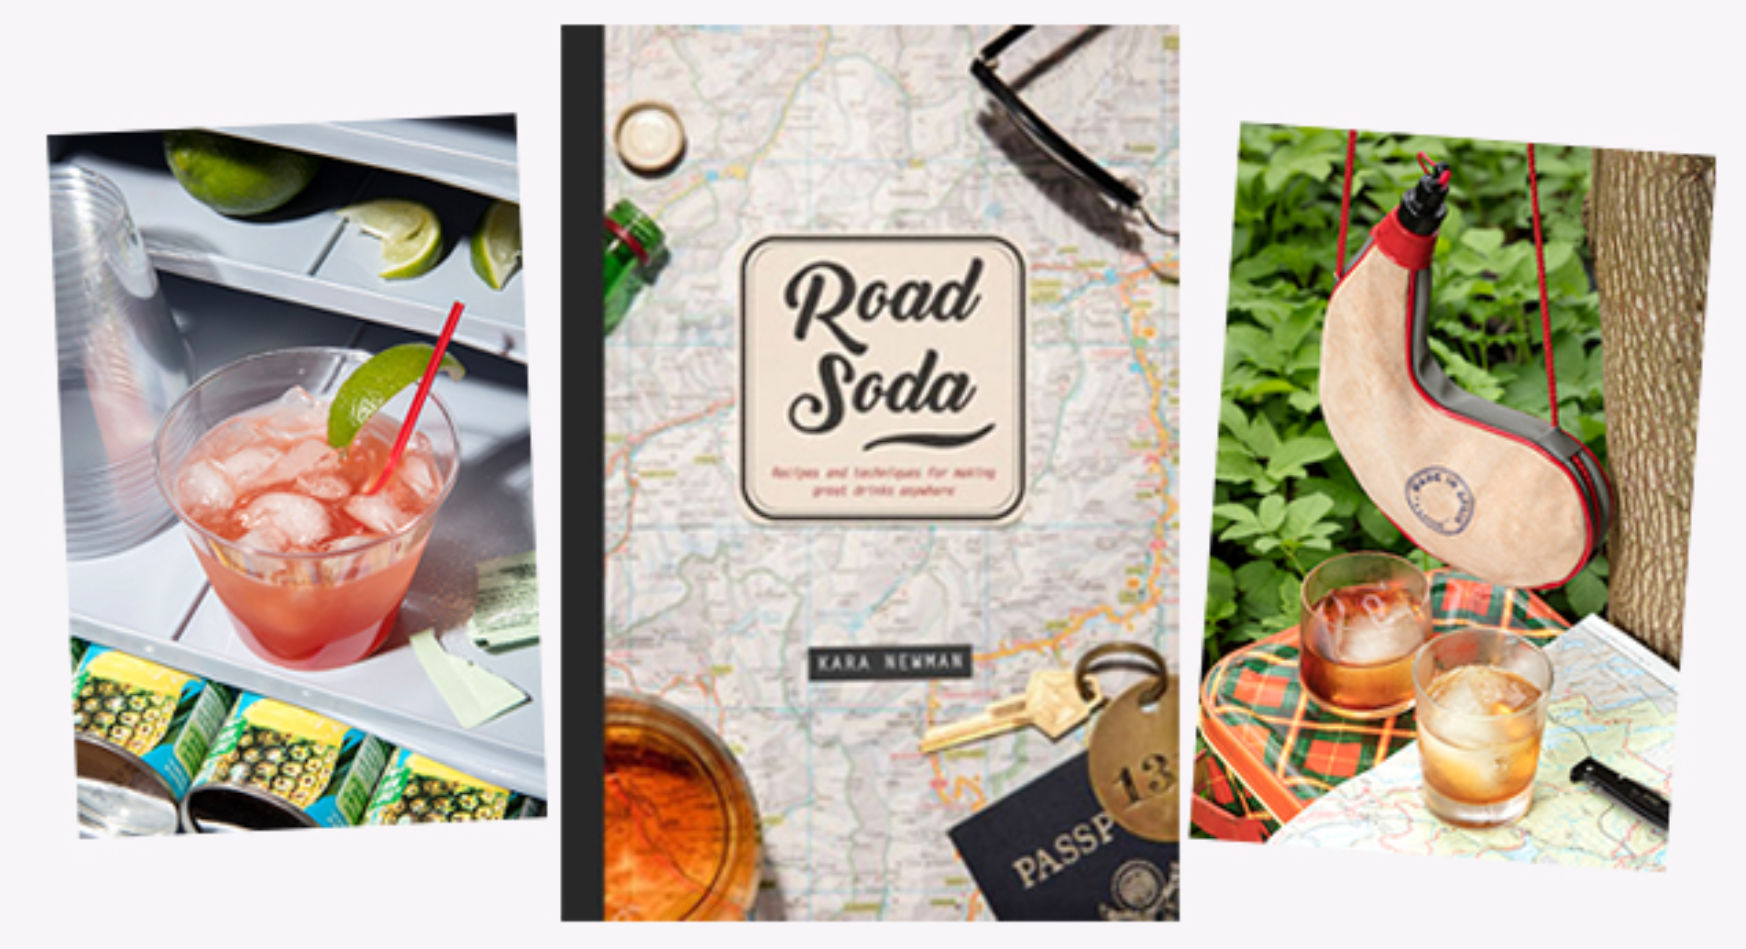 Road Soda cocktail book